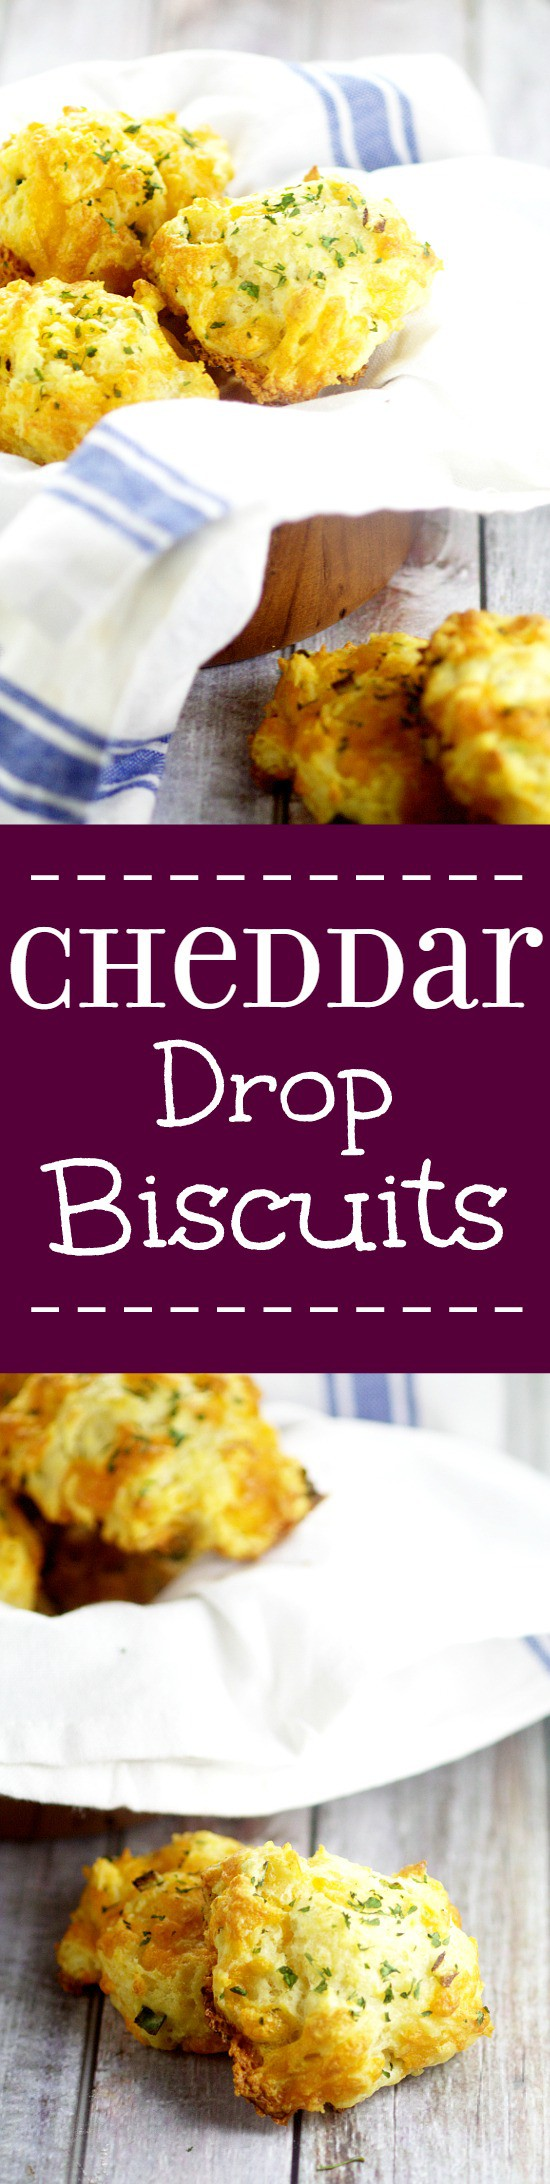 Easy, cheesy Cheddar Drop Biscuits with lots of gooey cheddar cheese and green onions put a delicious twist on your average biscuit and take just 30 minutes to make! Perfect easy side dish recipe to go with any dinner or meal.